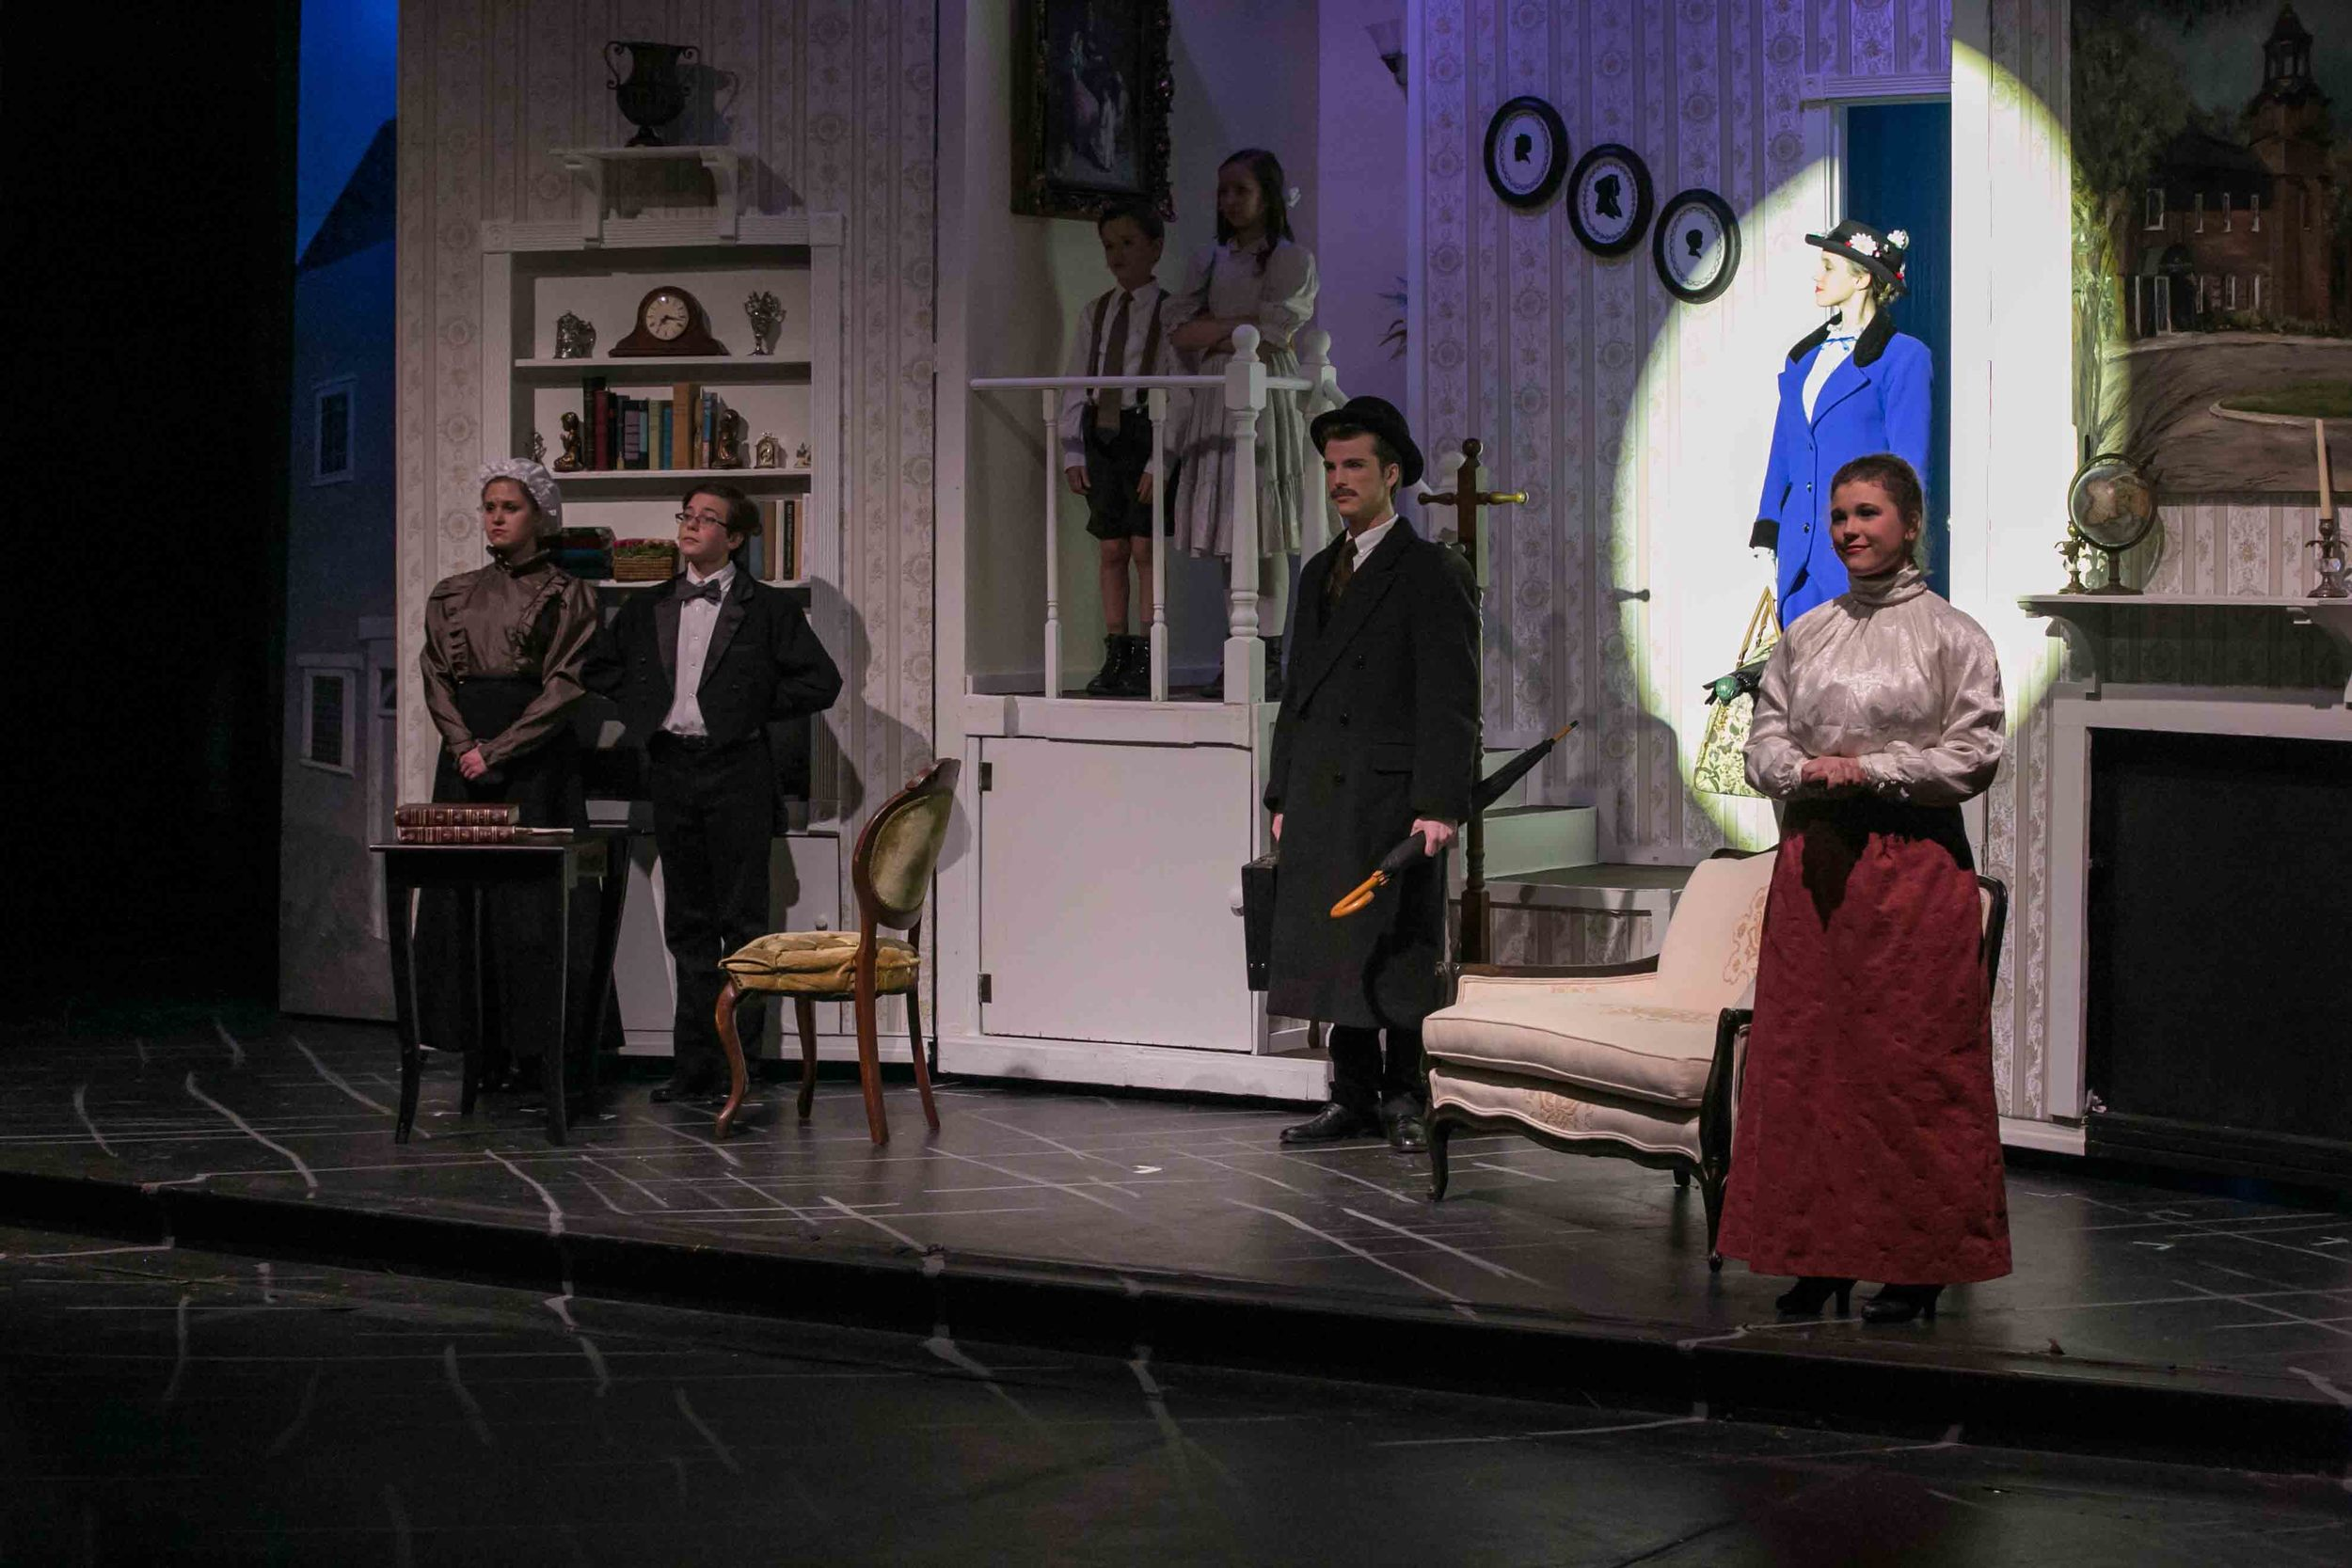 2-4-16 Mary Poppins Proper Cast 0066.jpg